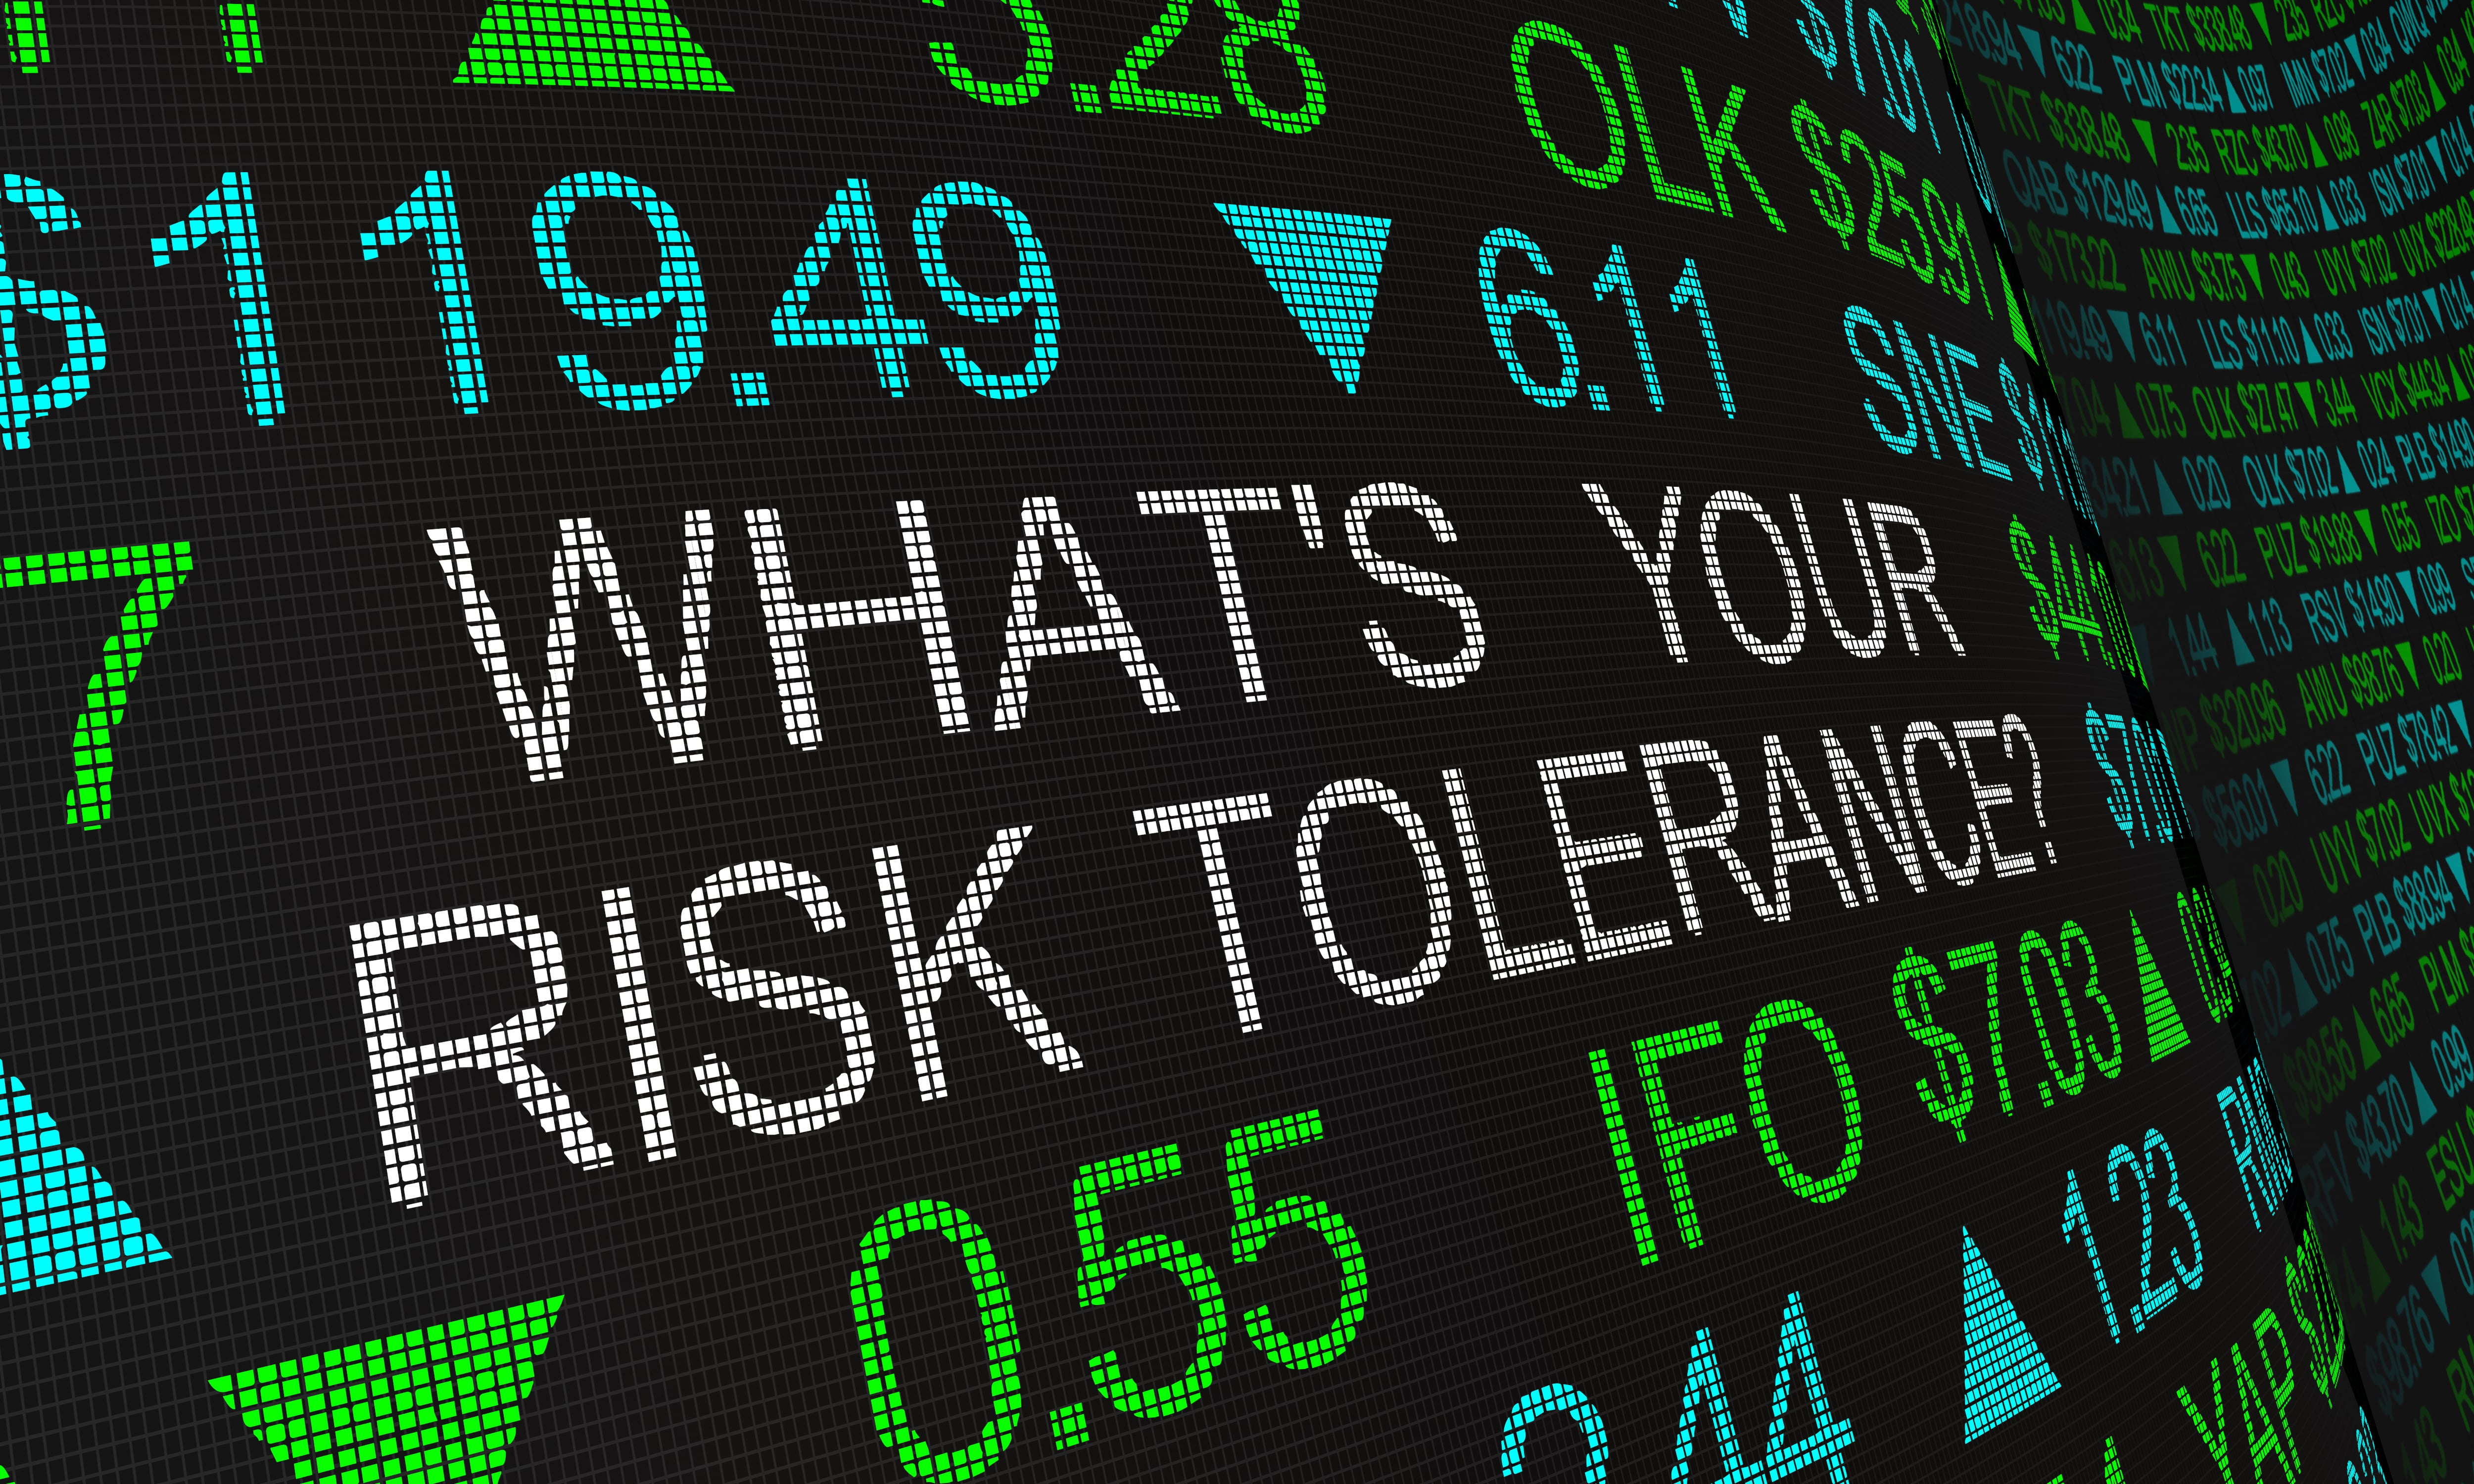 Stock market numbers asking for the risk tolerance